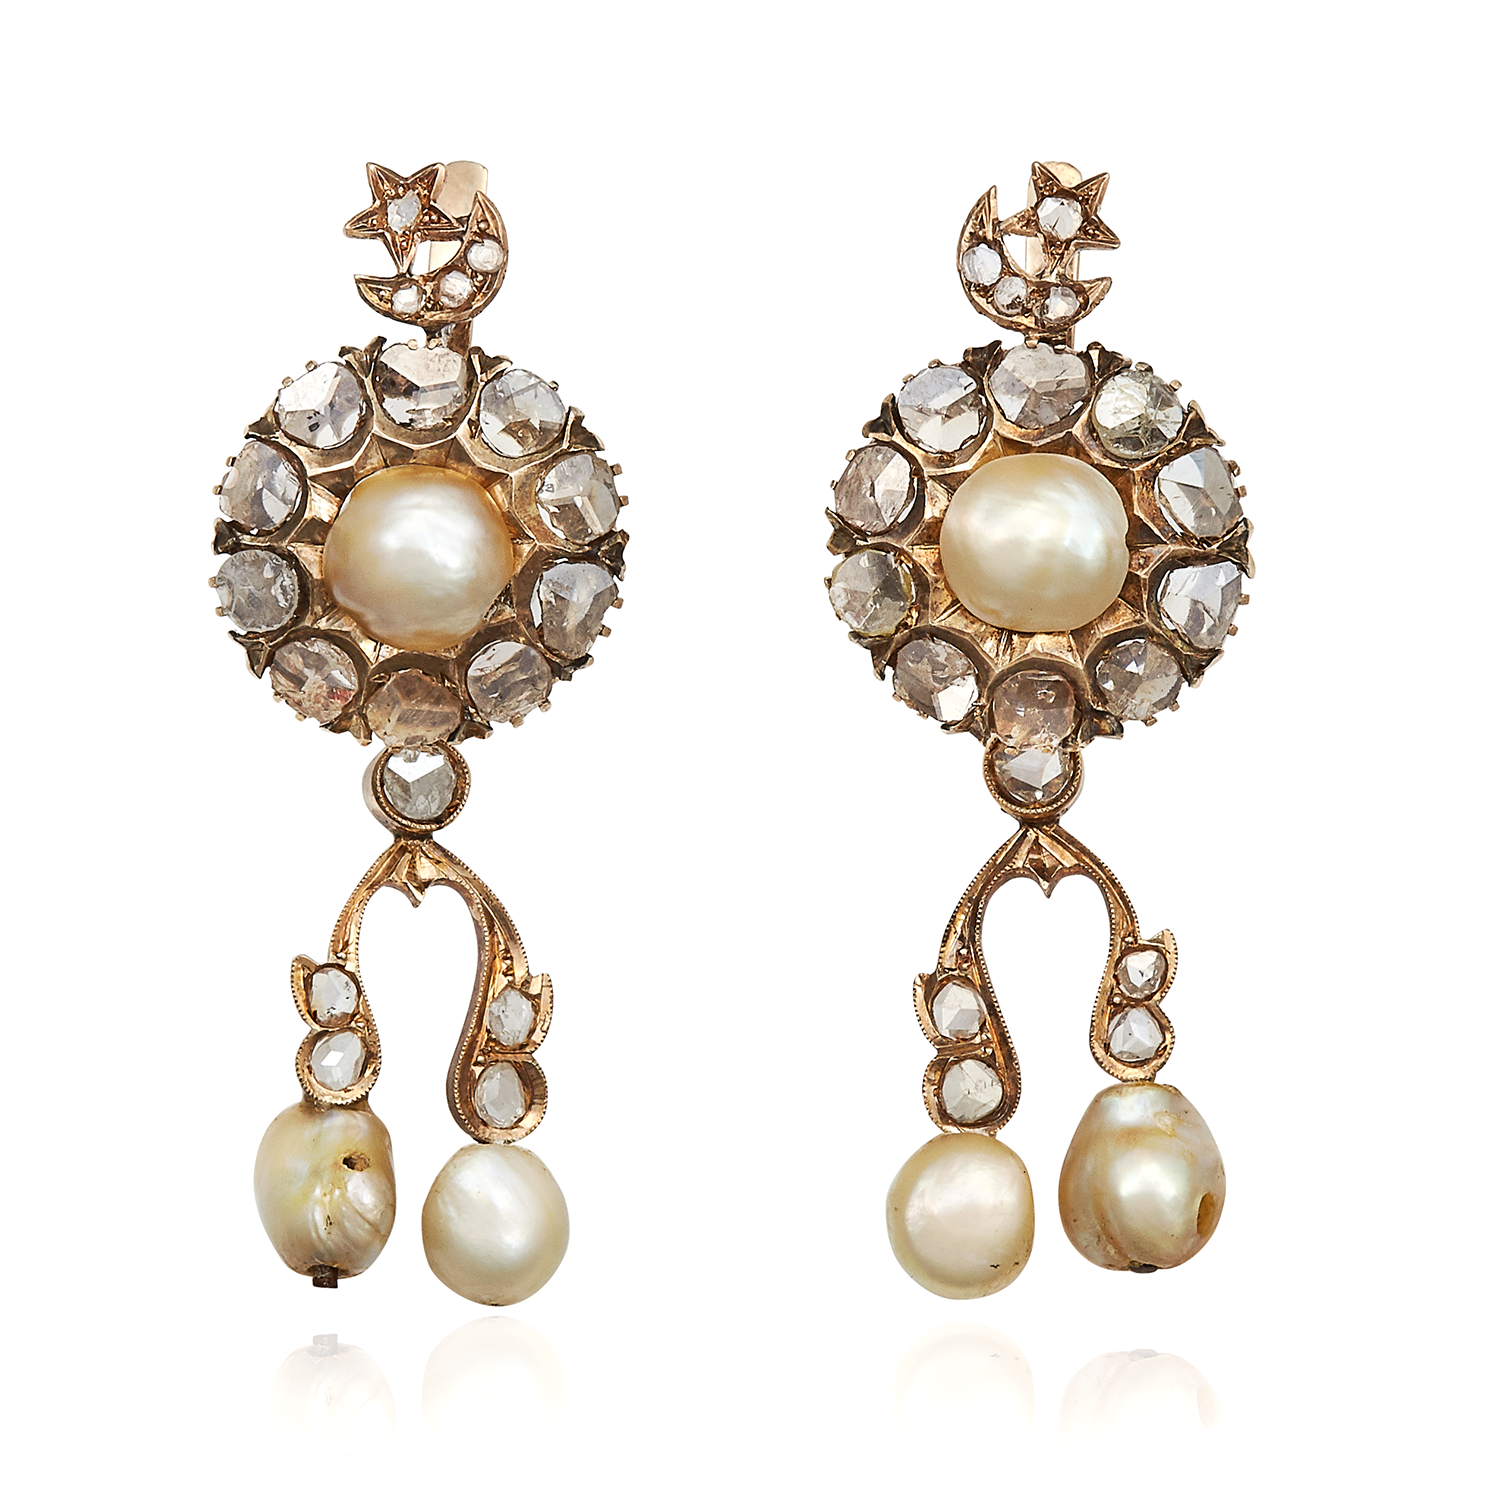 Los 48 - A PAIR OF ANTIQUE NATURAL PEARL AND DIAMOND EARRINGS in yellow gold, each with a pearl and rose